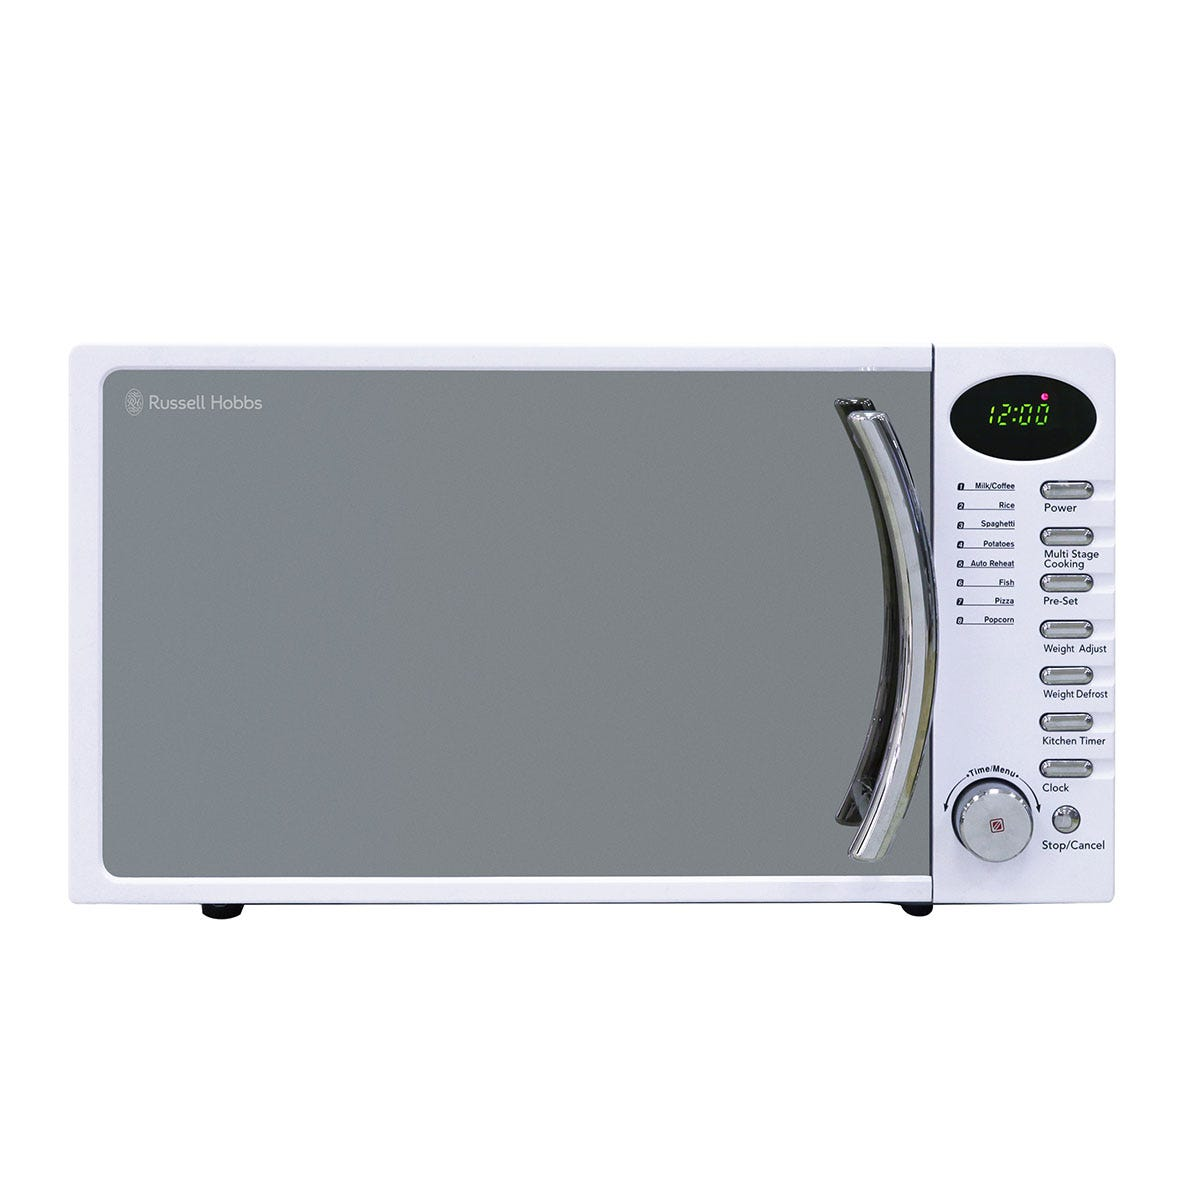 Russell Hobbs RHM1714WC 700W 17L Heritage Digital Solo Microwave - White